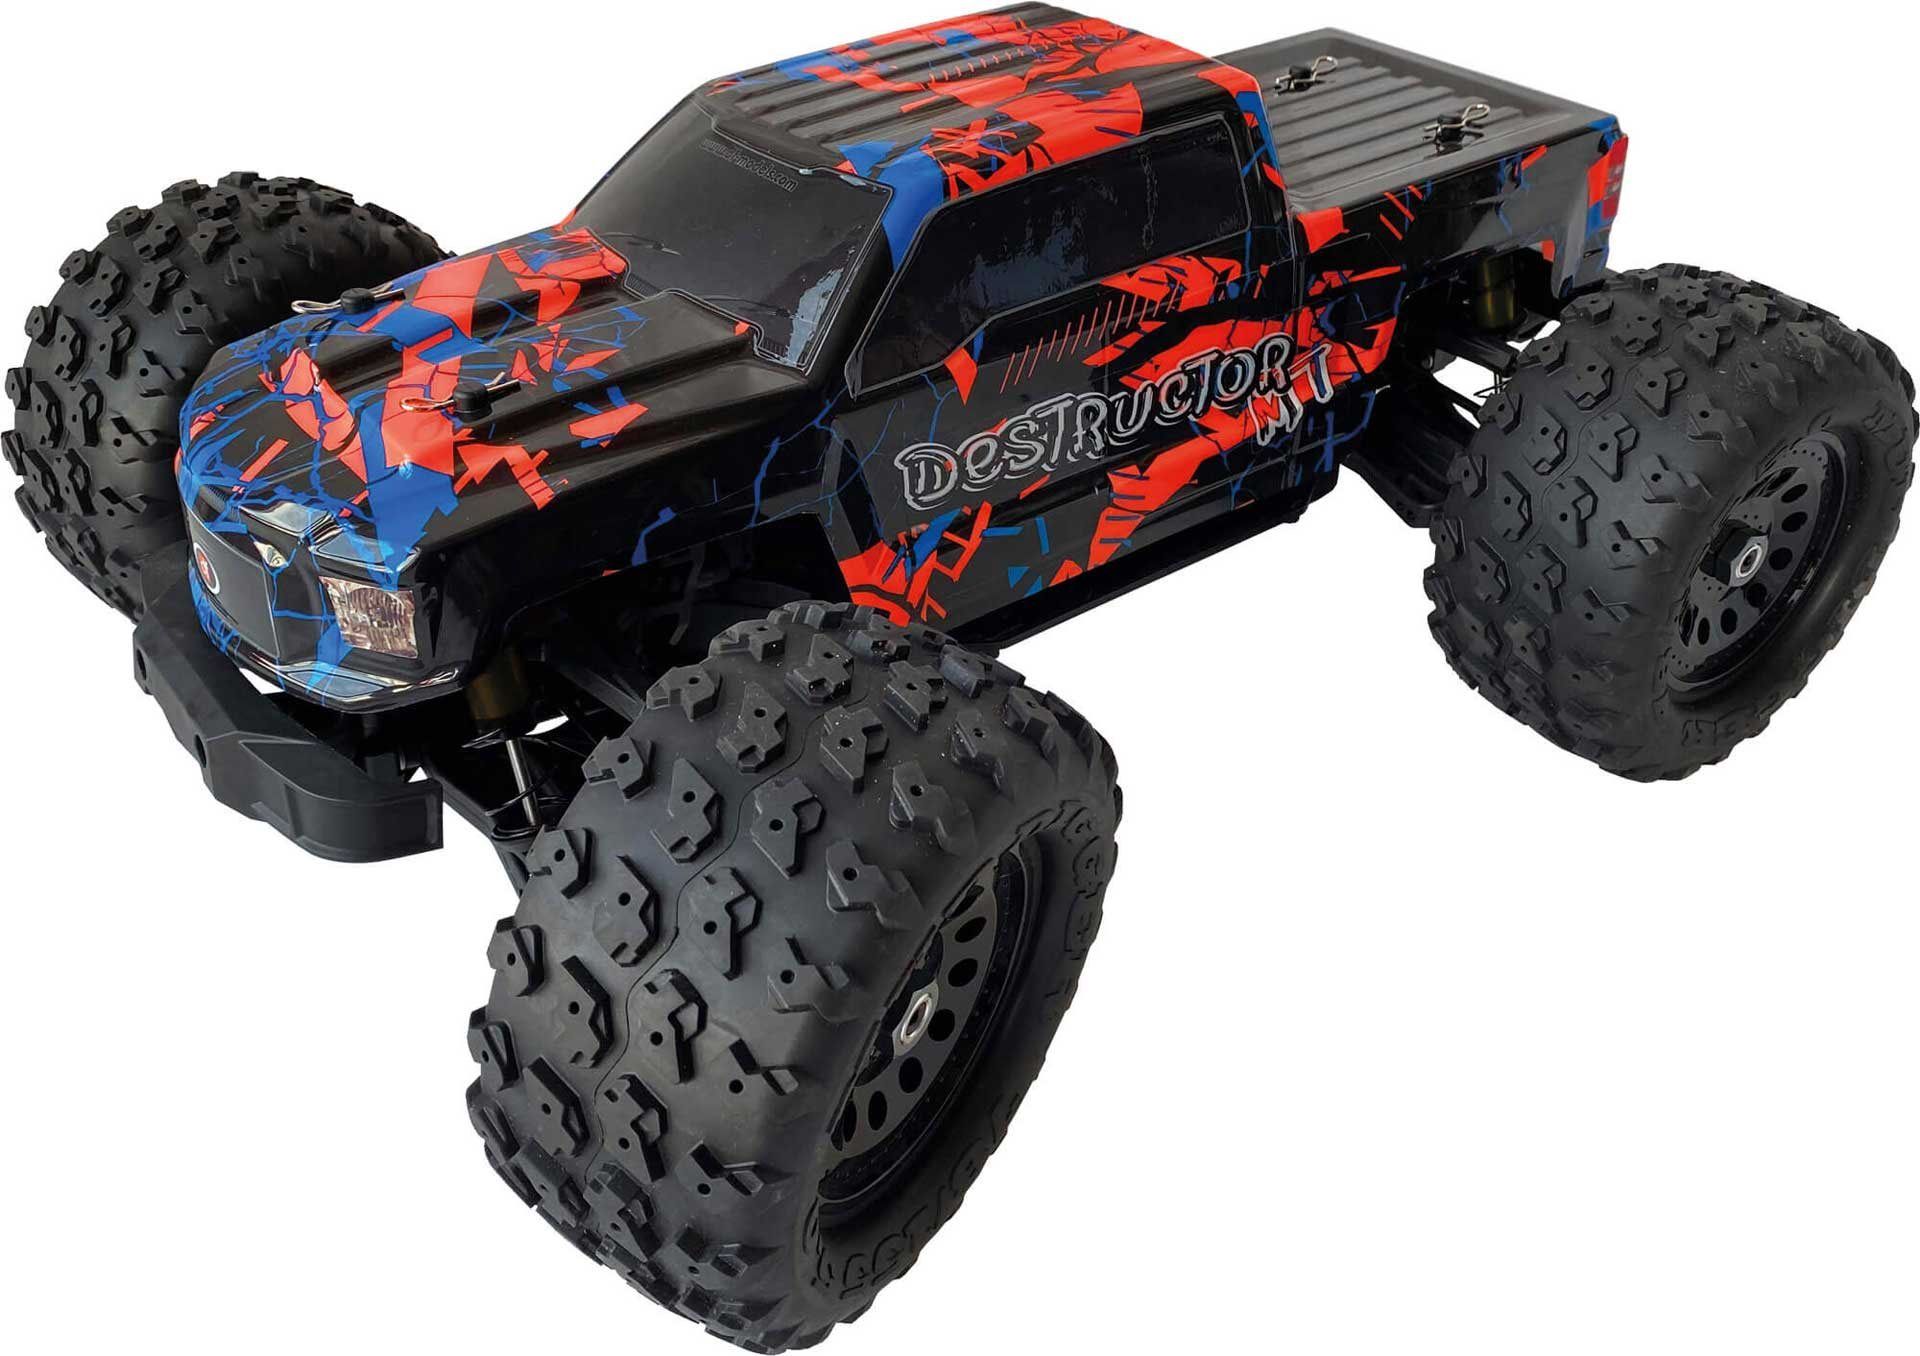 DRIVE & FLY MODELS Destructor MT 1/8 Truck Brushless RTR 4WD EP